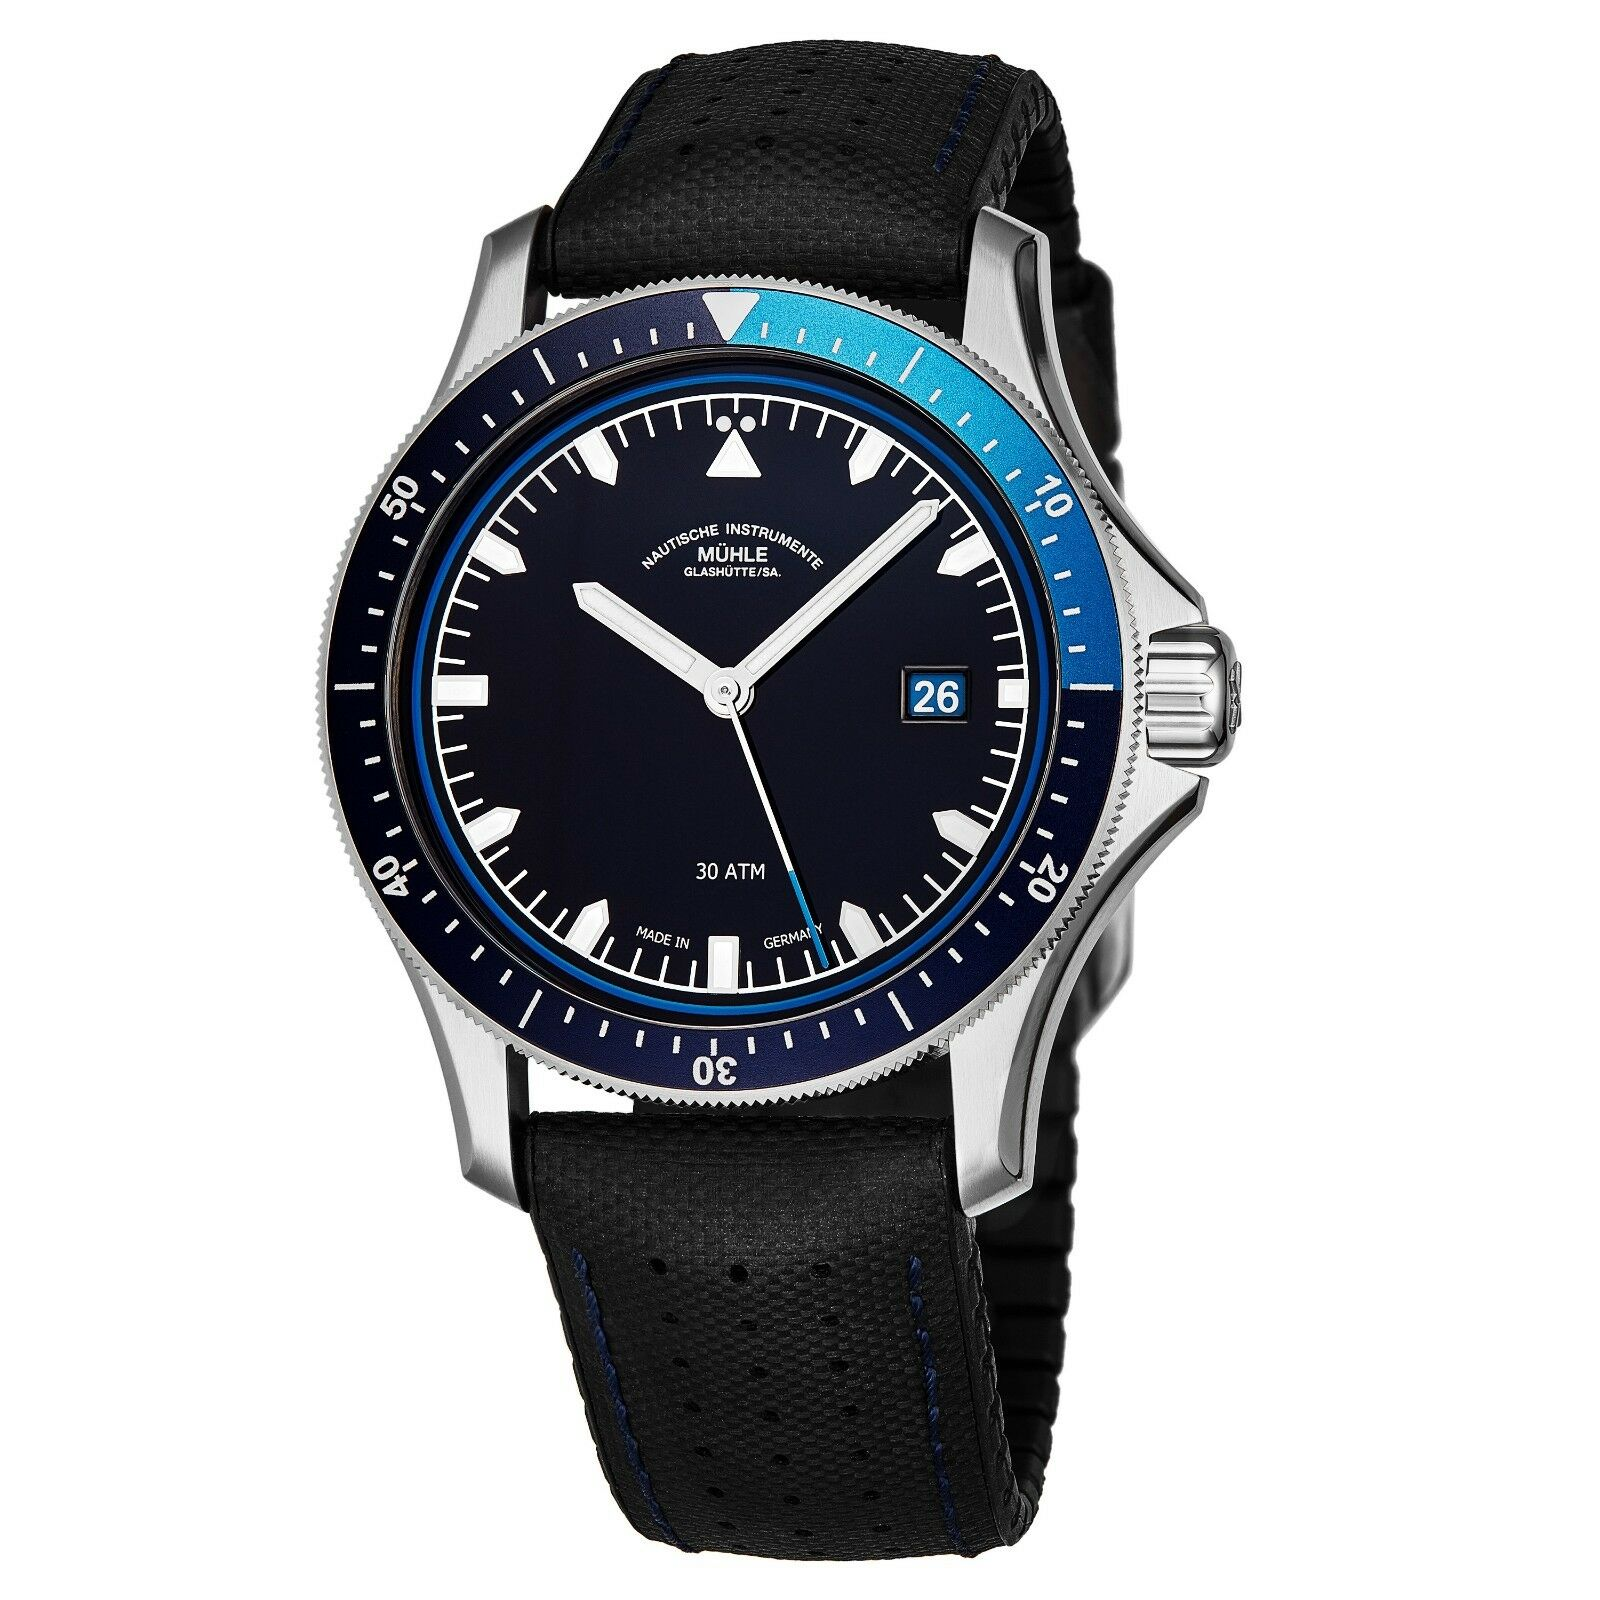 Muhle Glashutte ProMareGo Men's Blue Dial Leather Automatic Watch M1-42-32-NB - watch picture 1